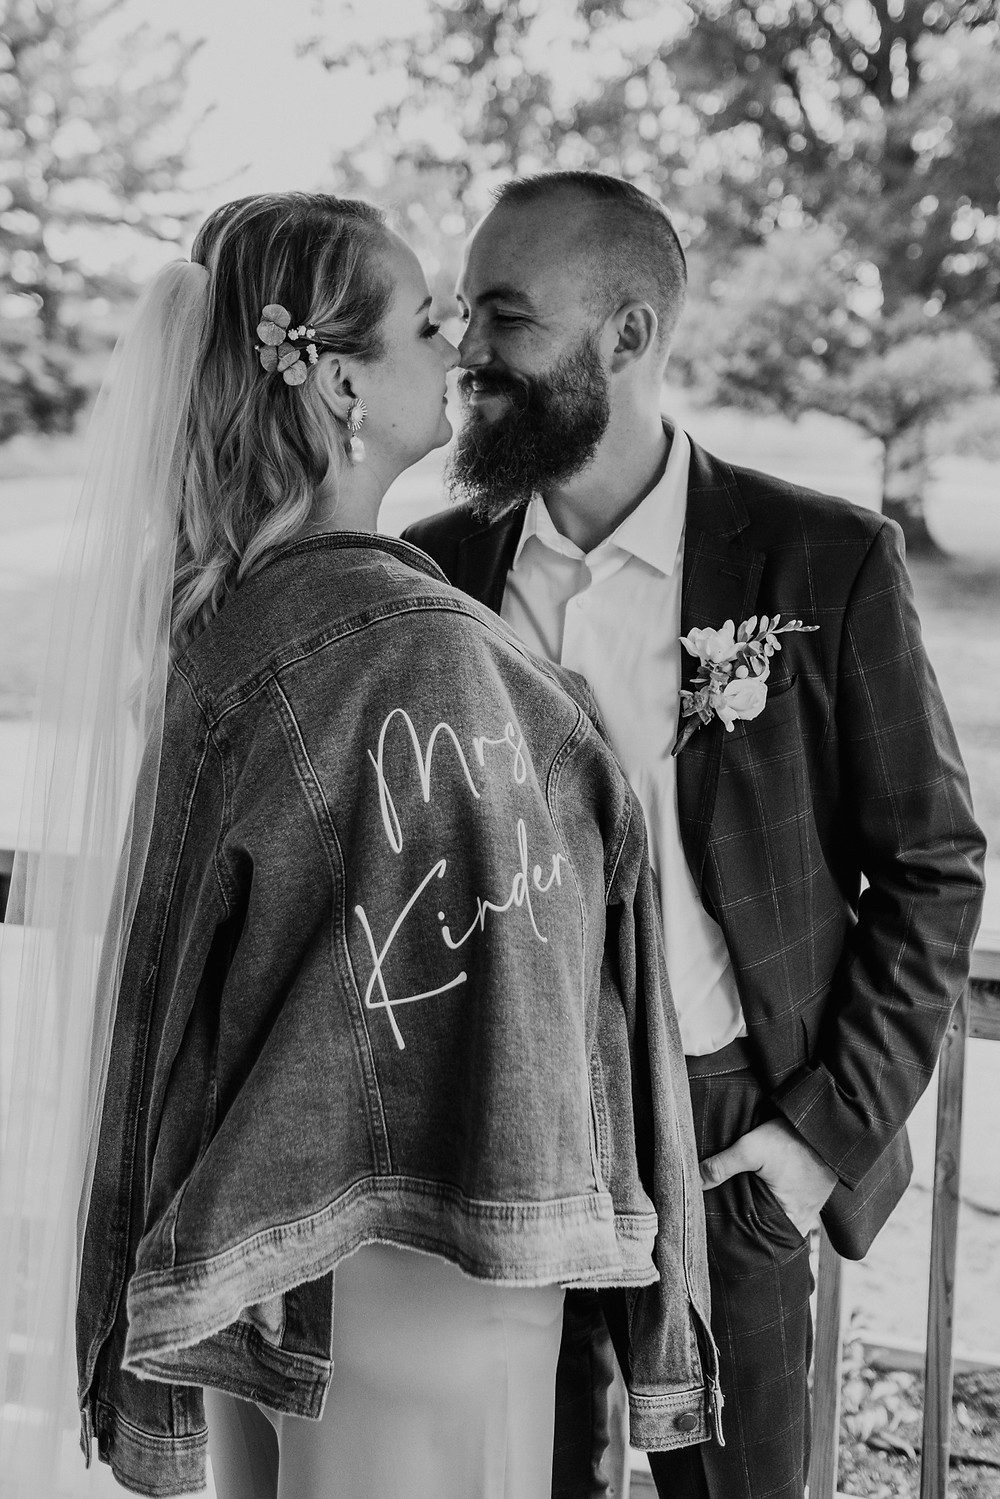 Black and white wedding portrait of bride and groom. Photographed by Nicole Leanne Photography.